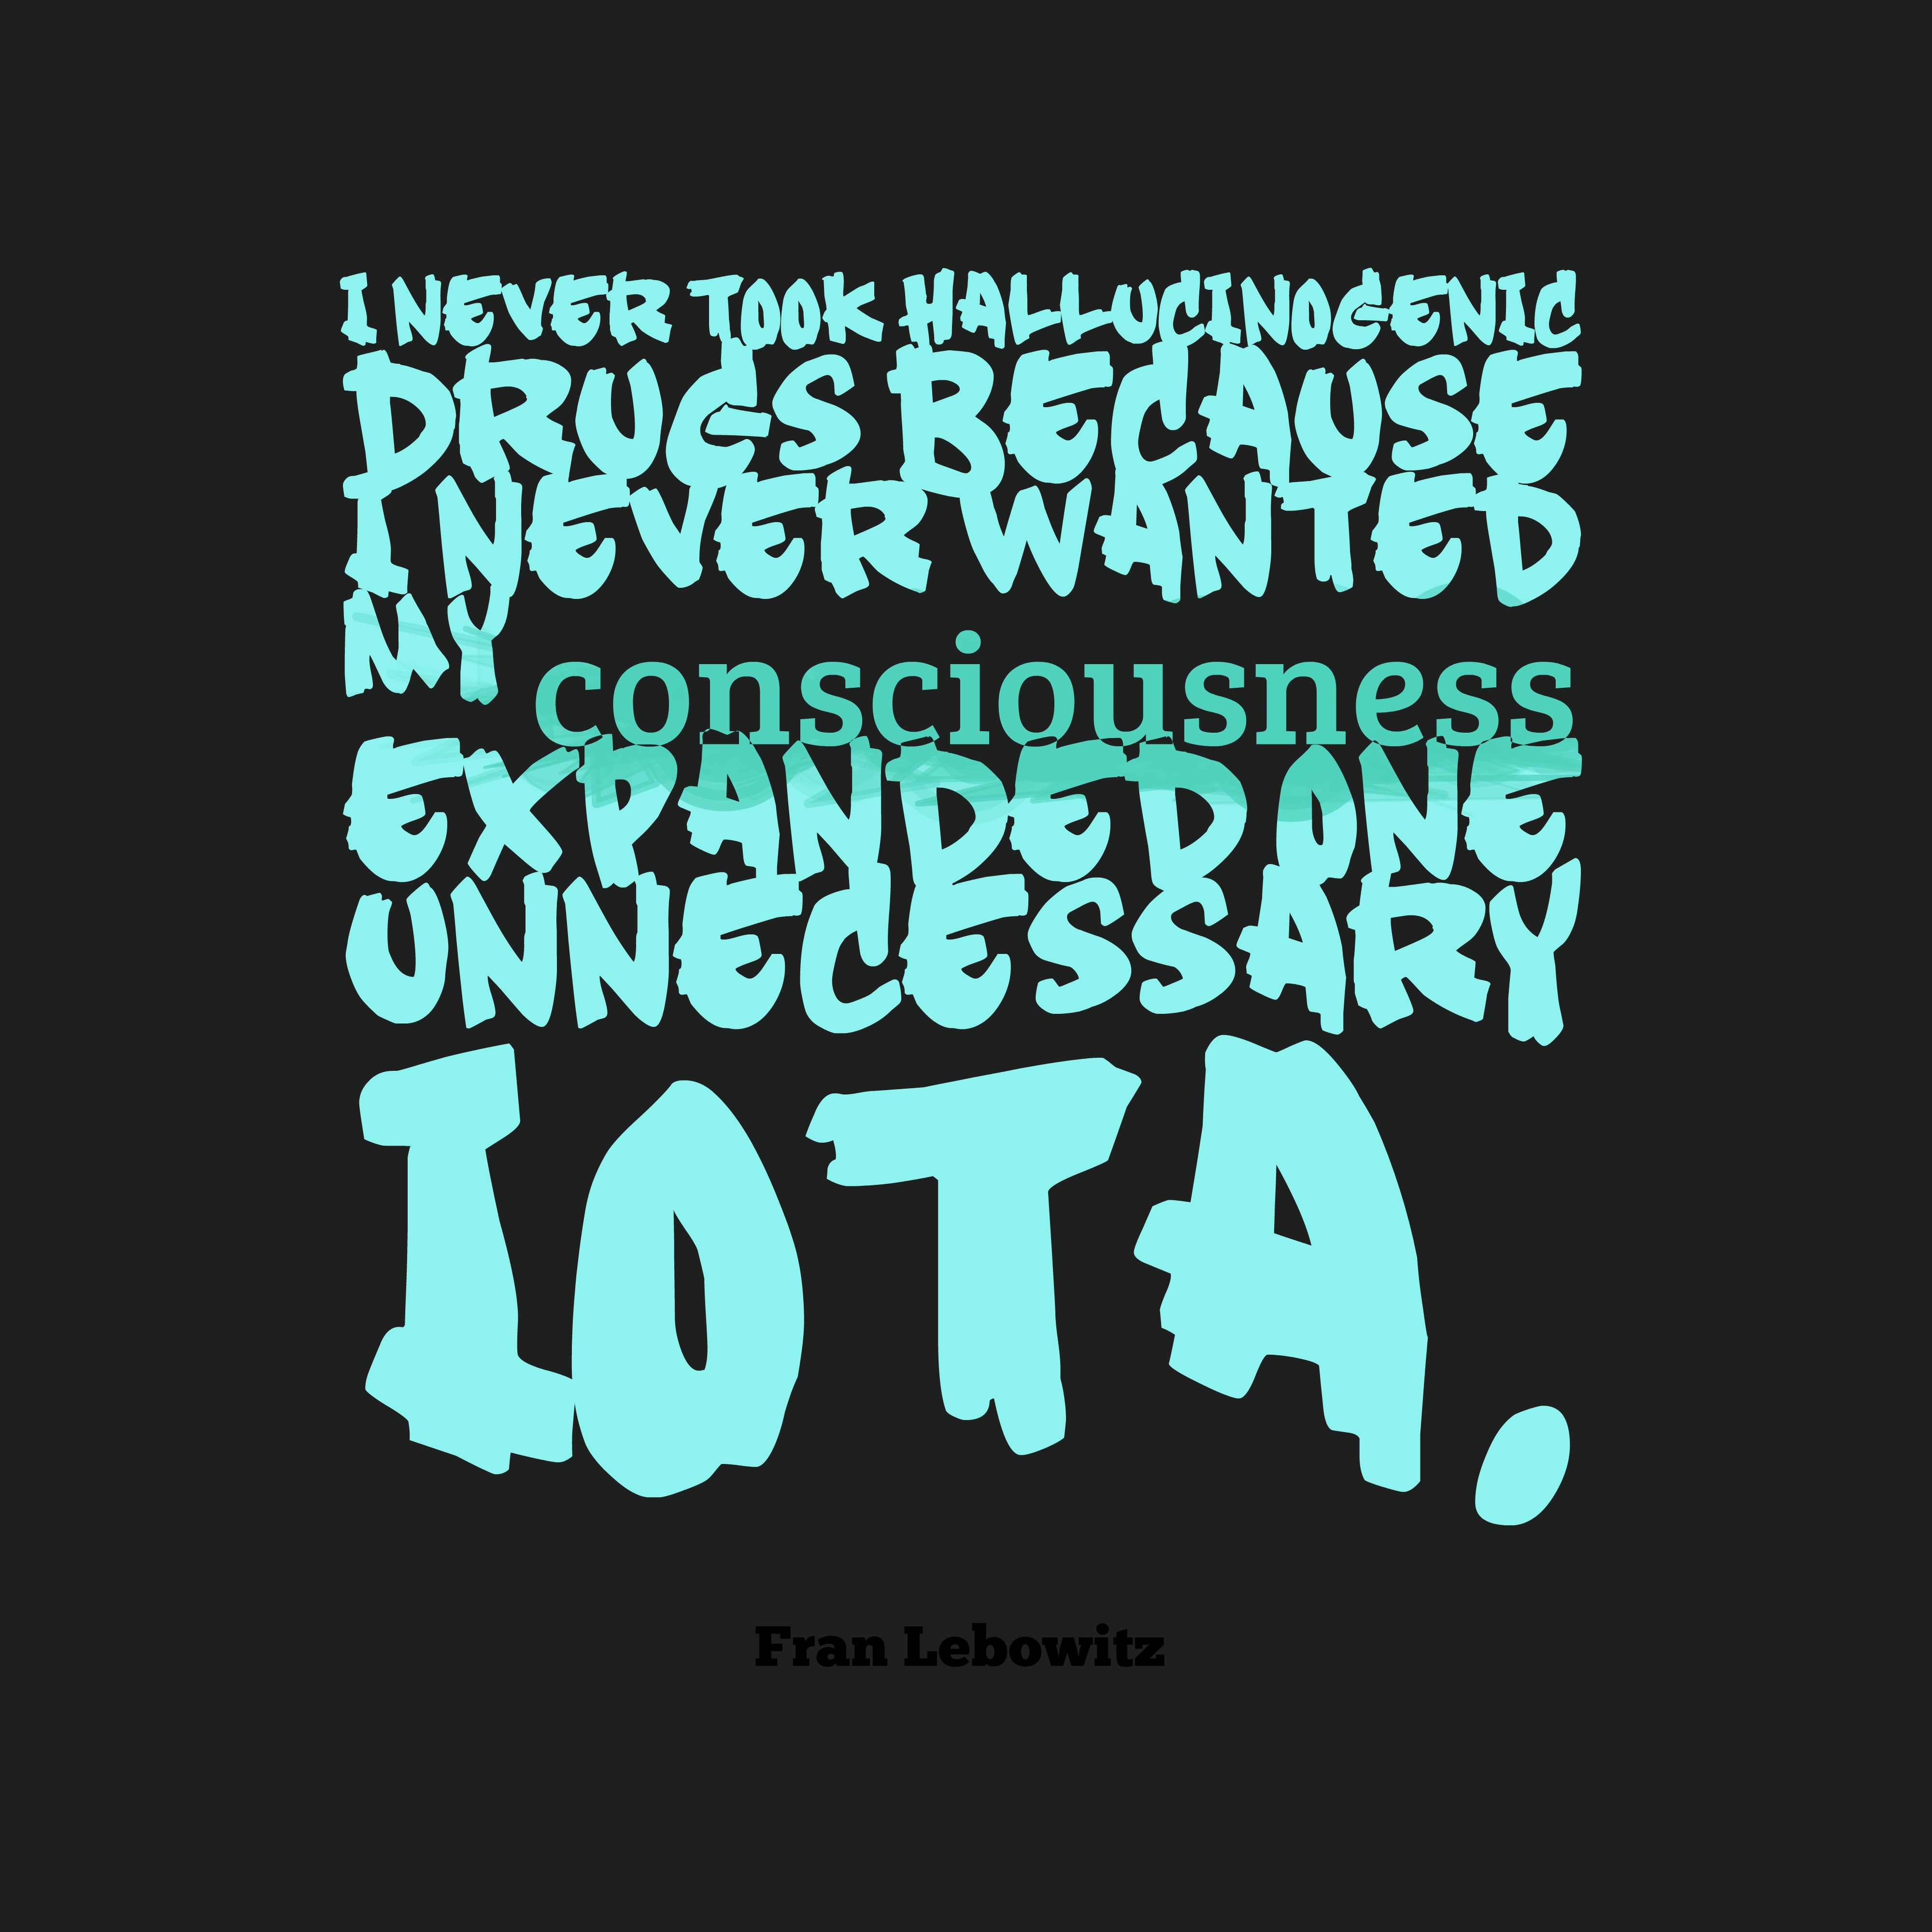 Quotes image of I never took hallucinogenic drugs because I never wanted my consciousness expanded one unnecessary iota.